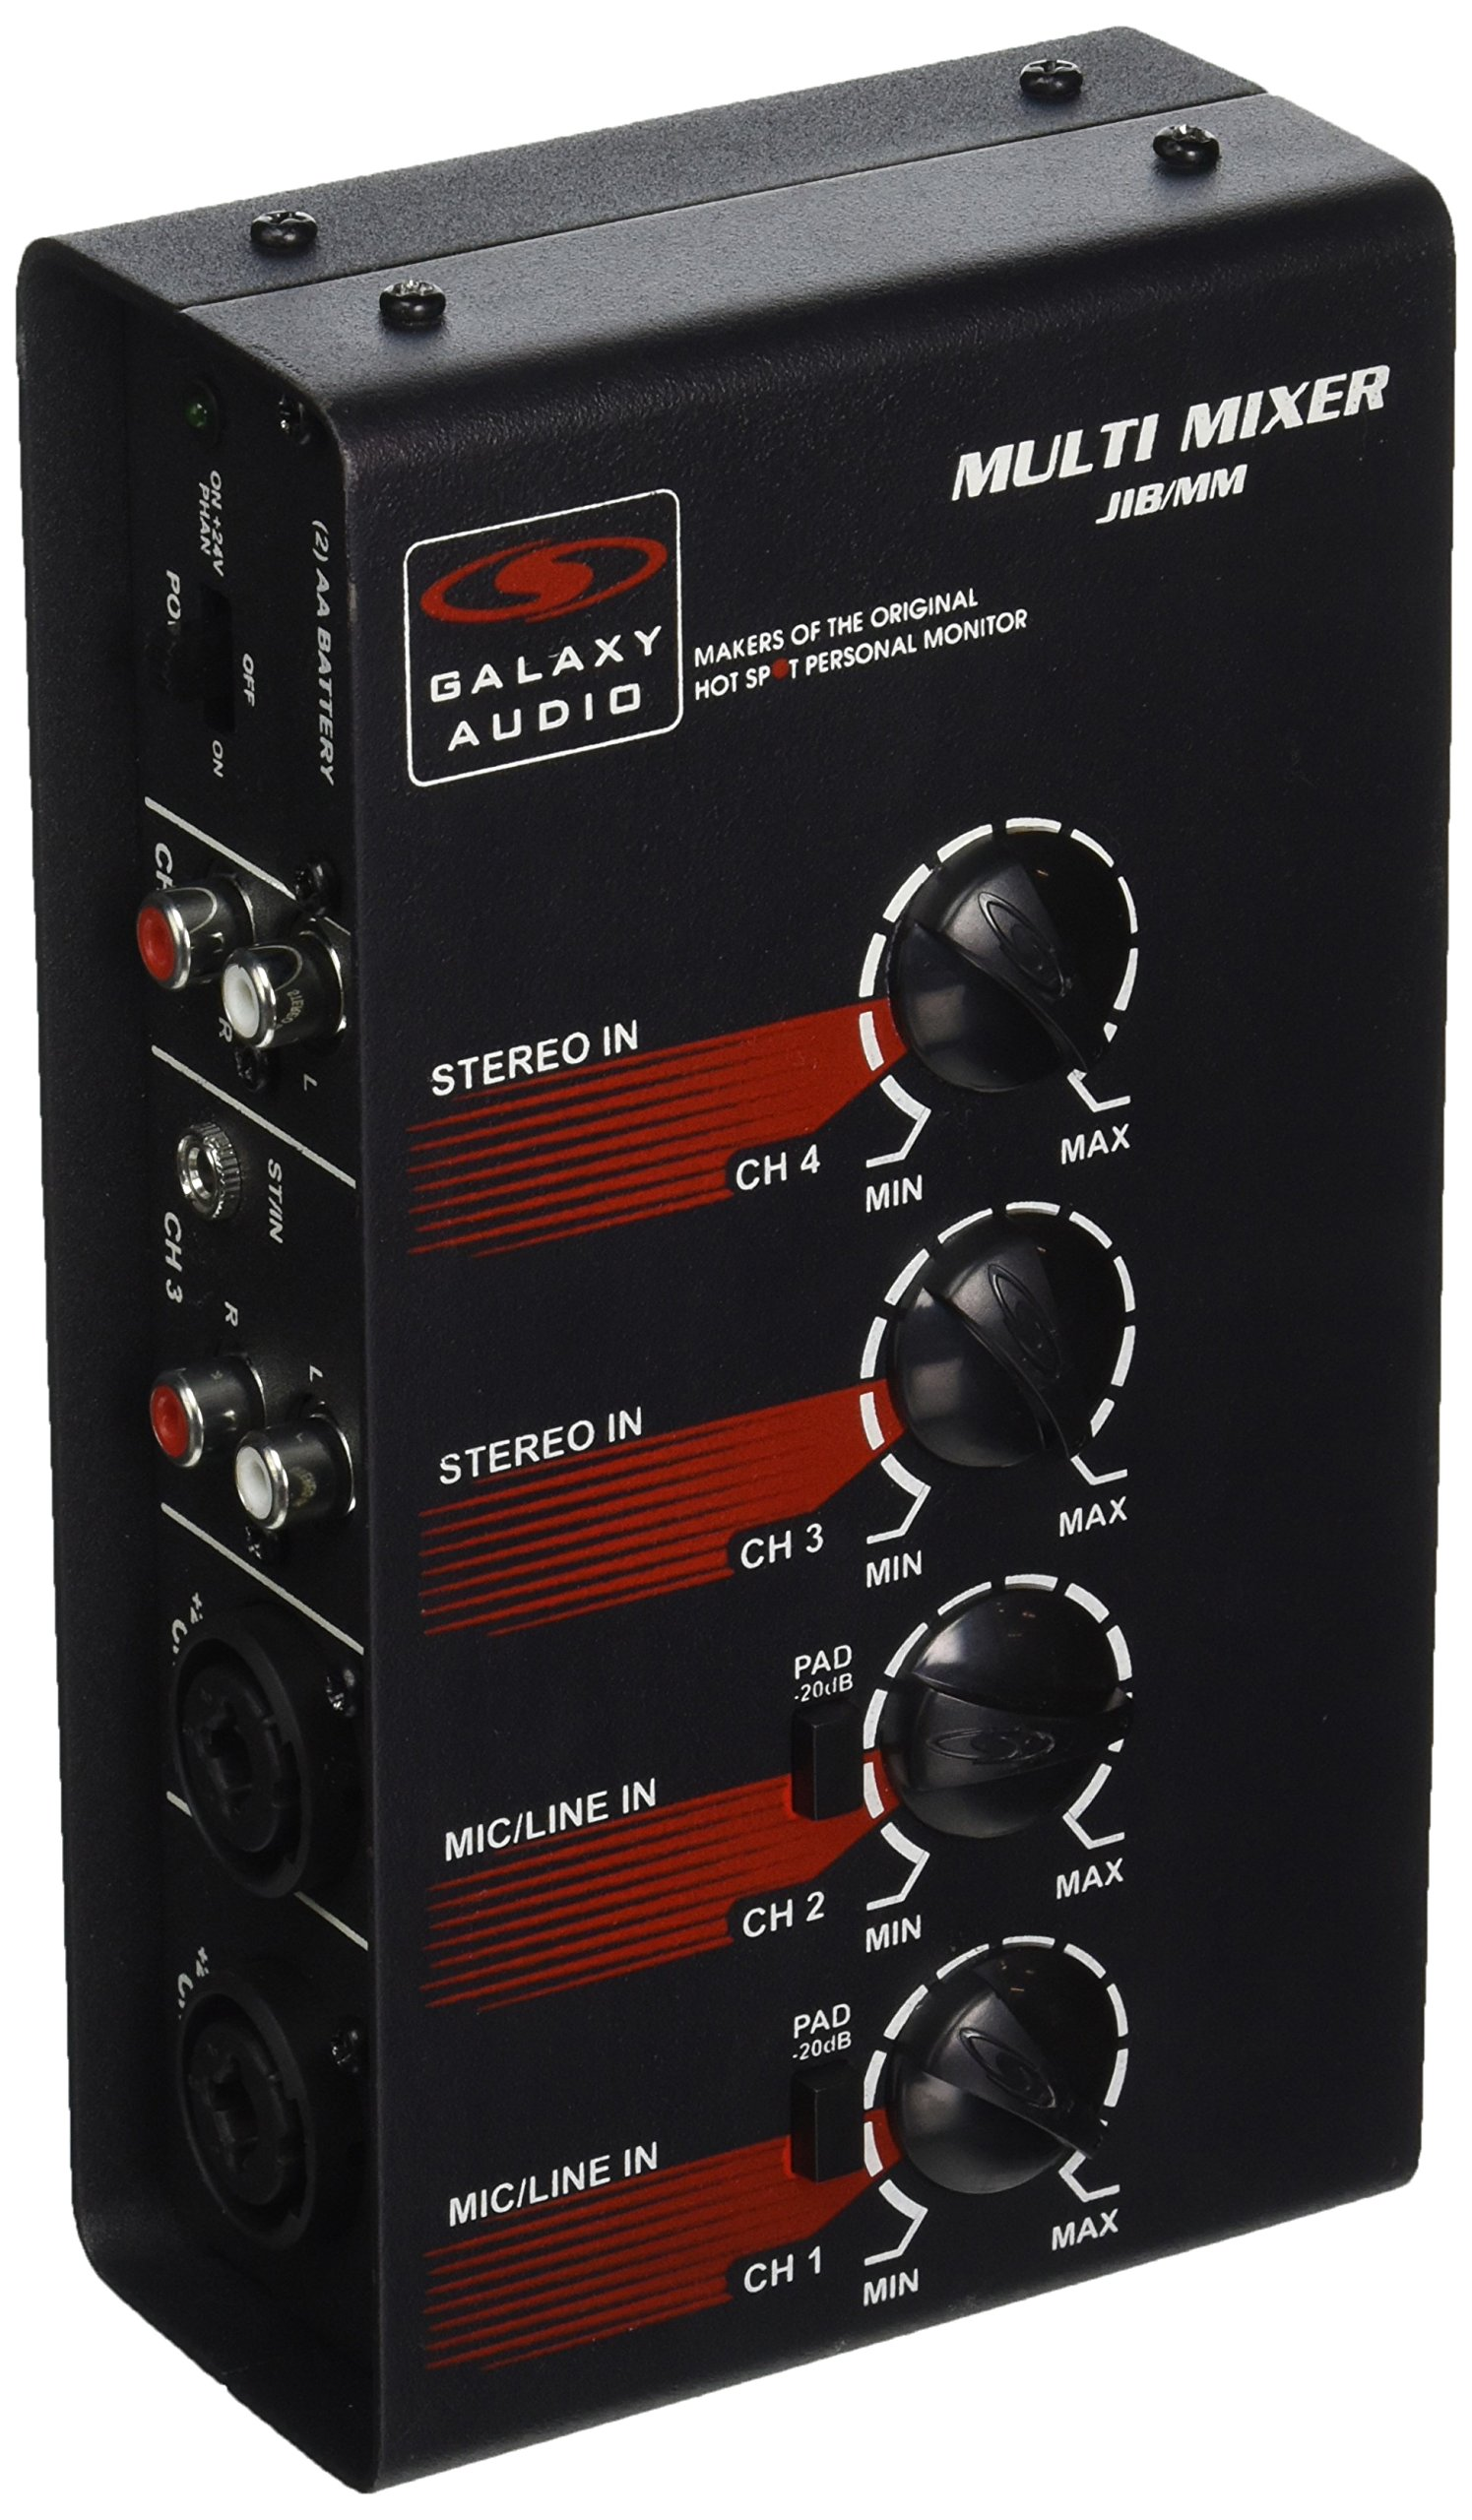 Galaxy Audio JIBMM 4 Channel Battery Operated